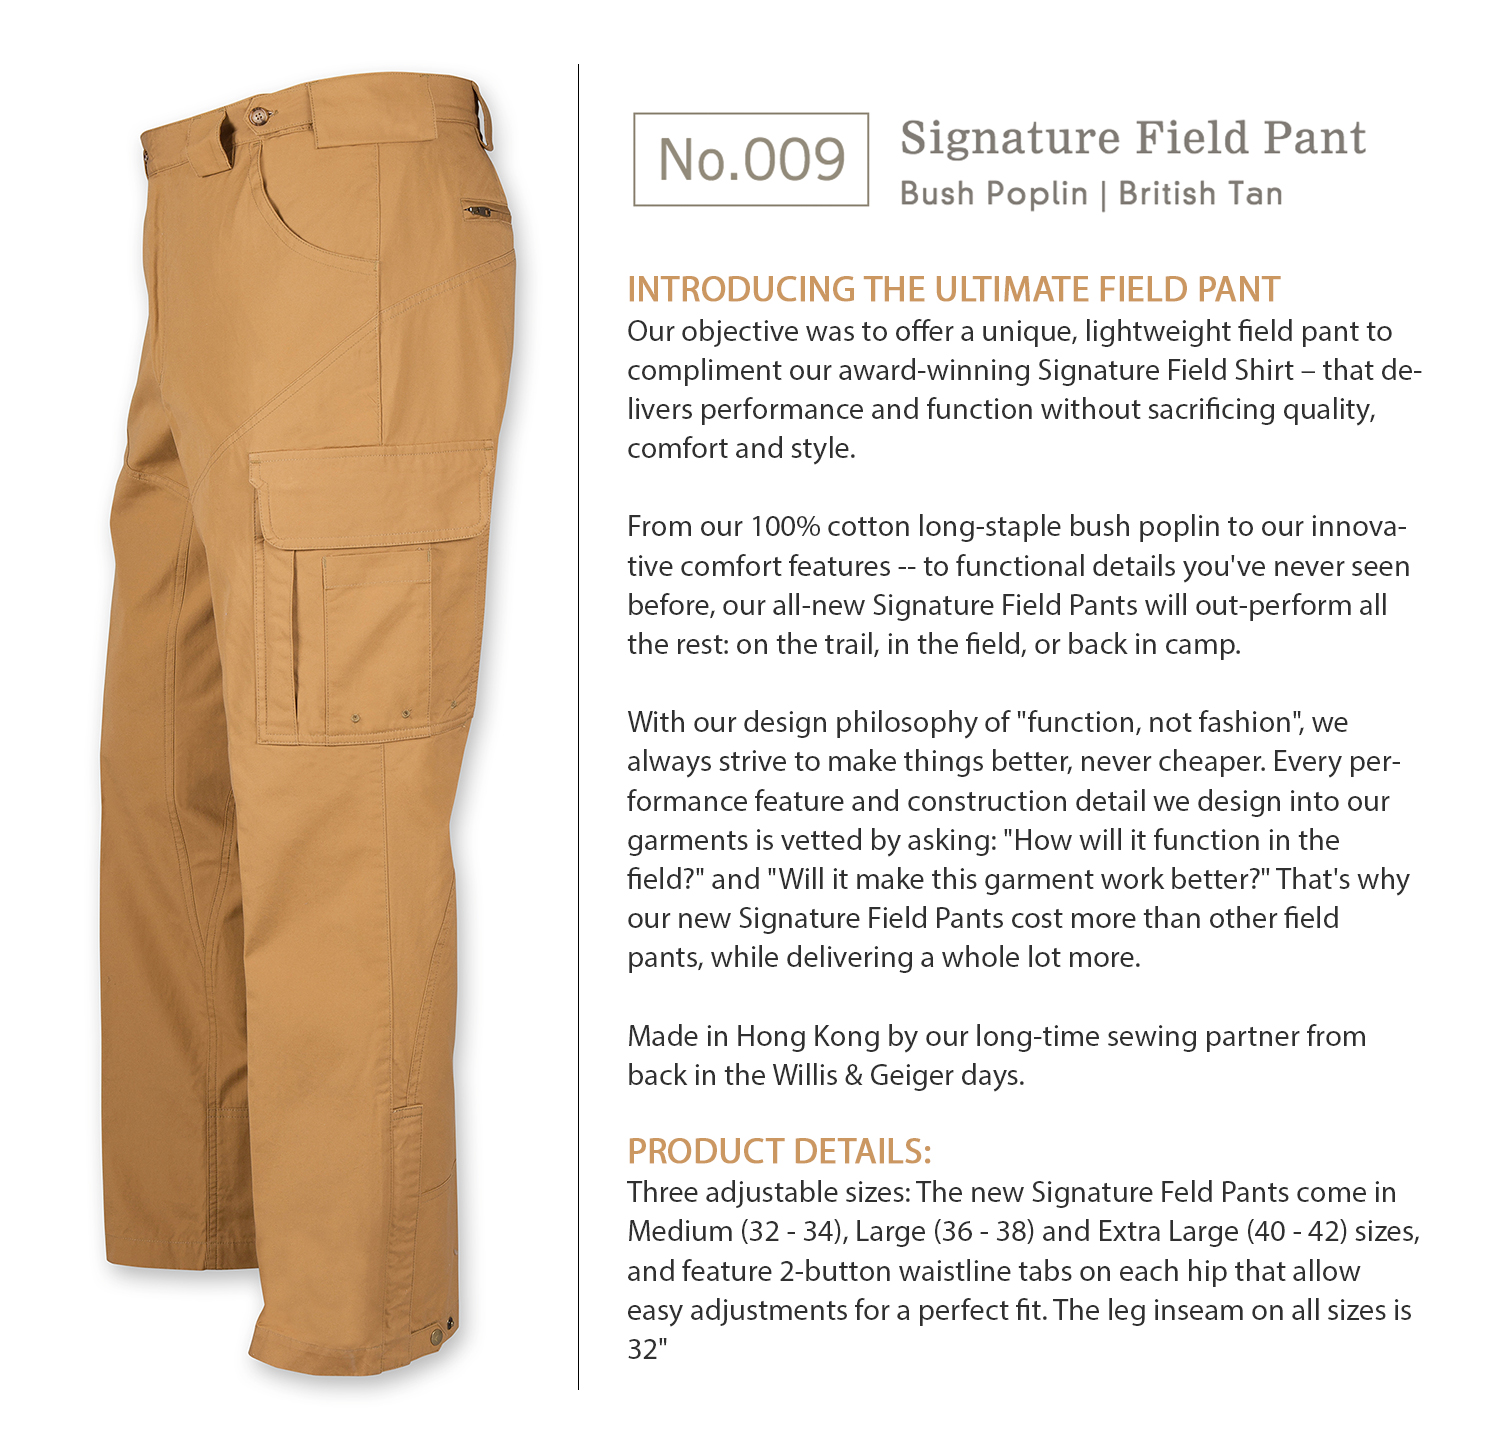 ac-signaturefieldpants